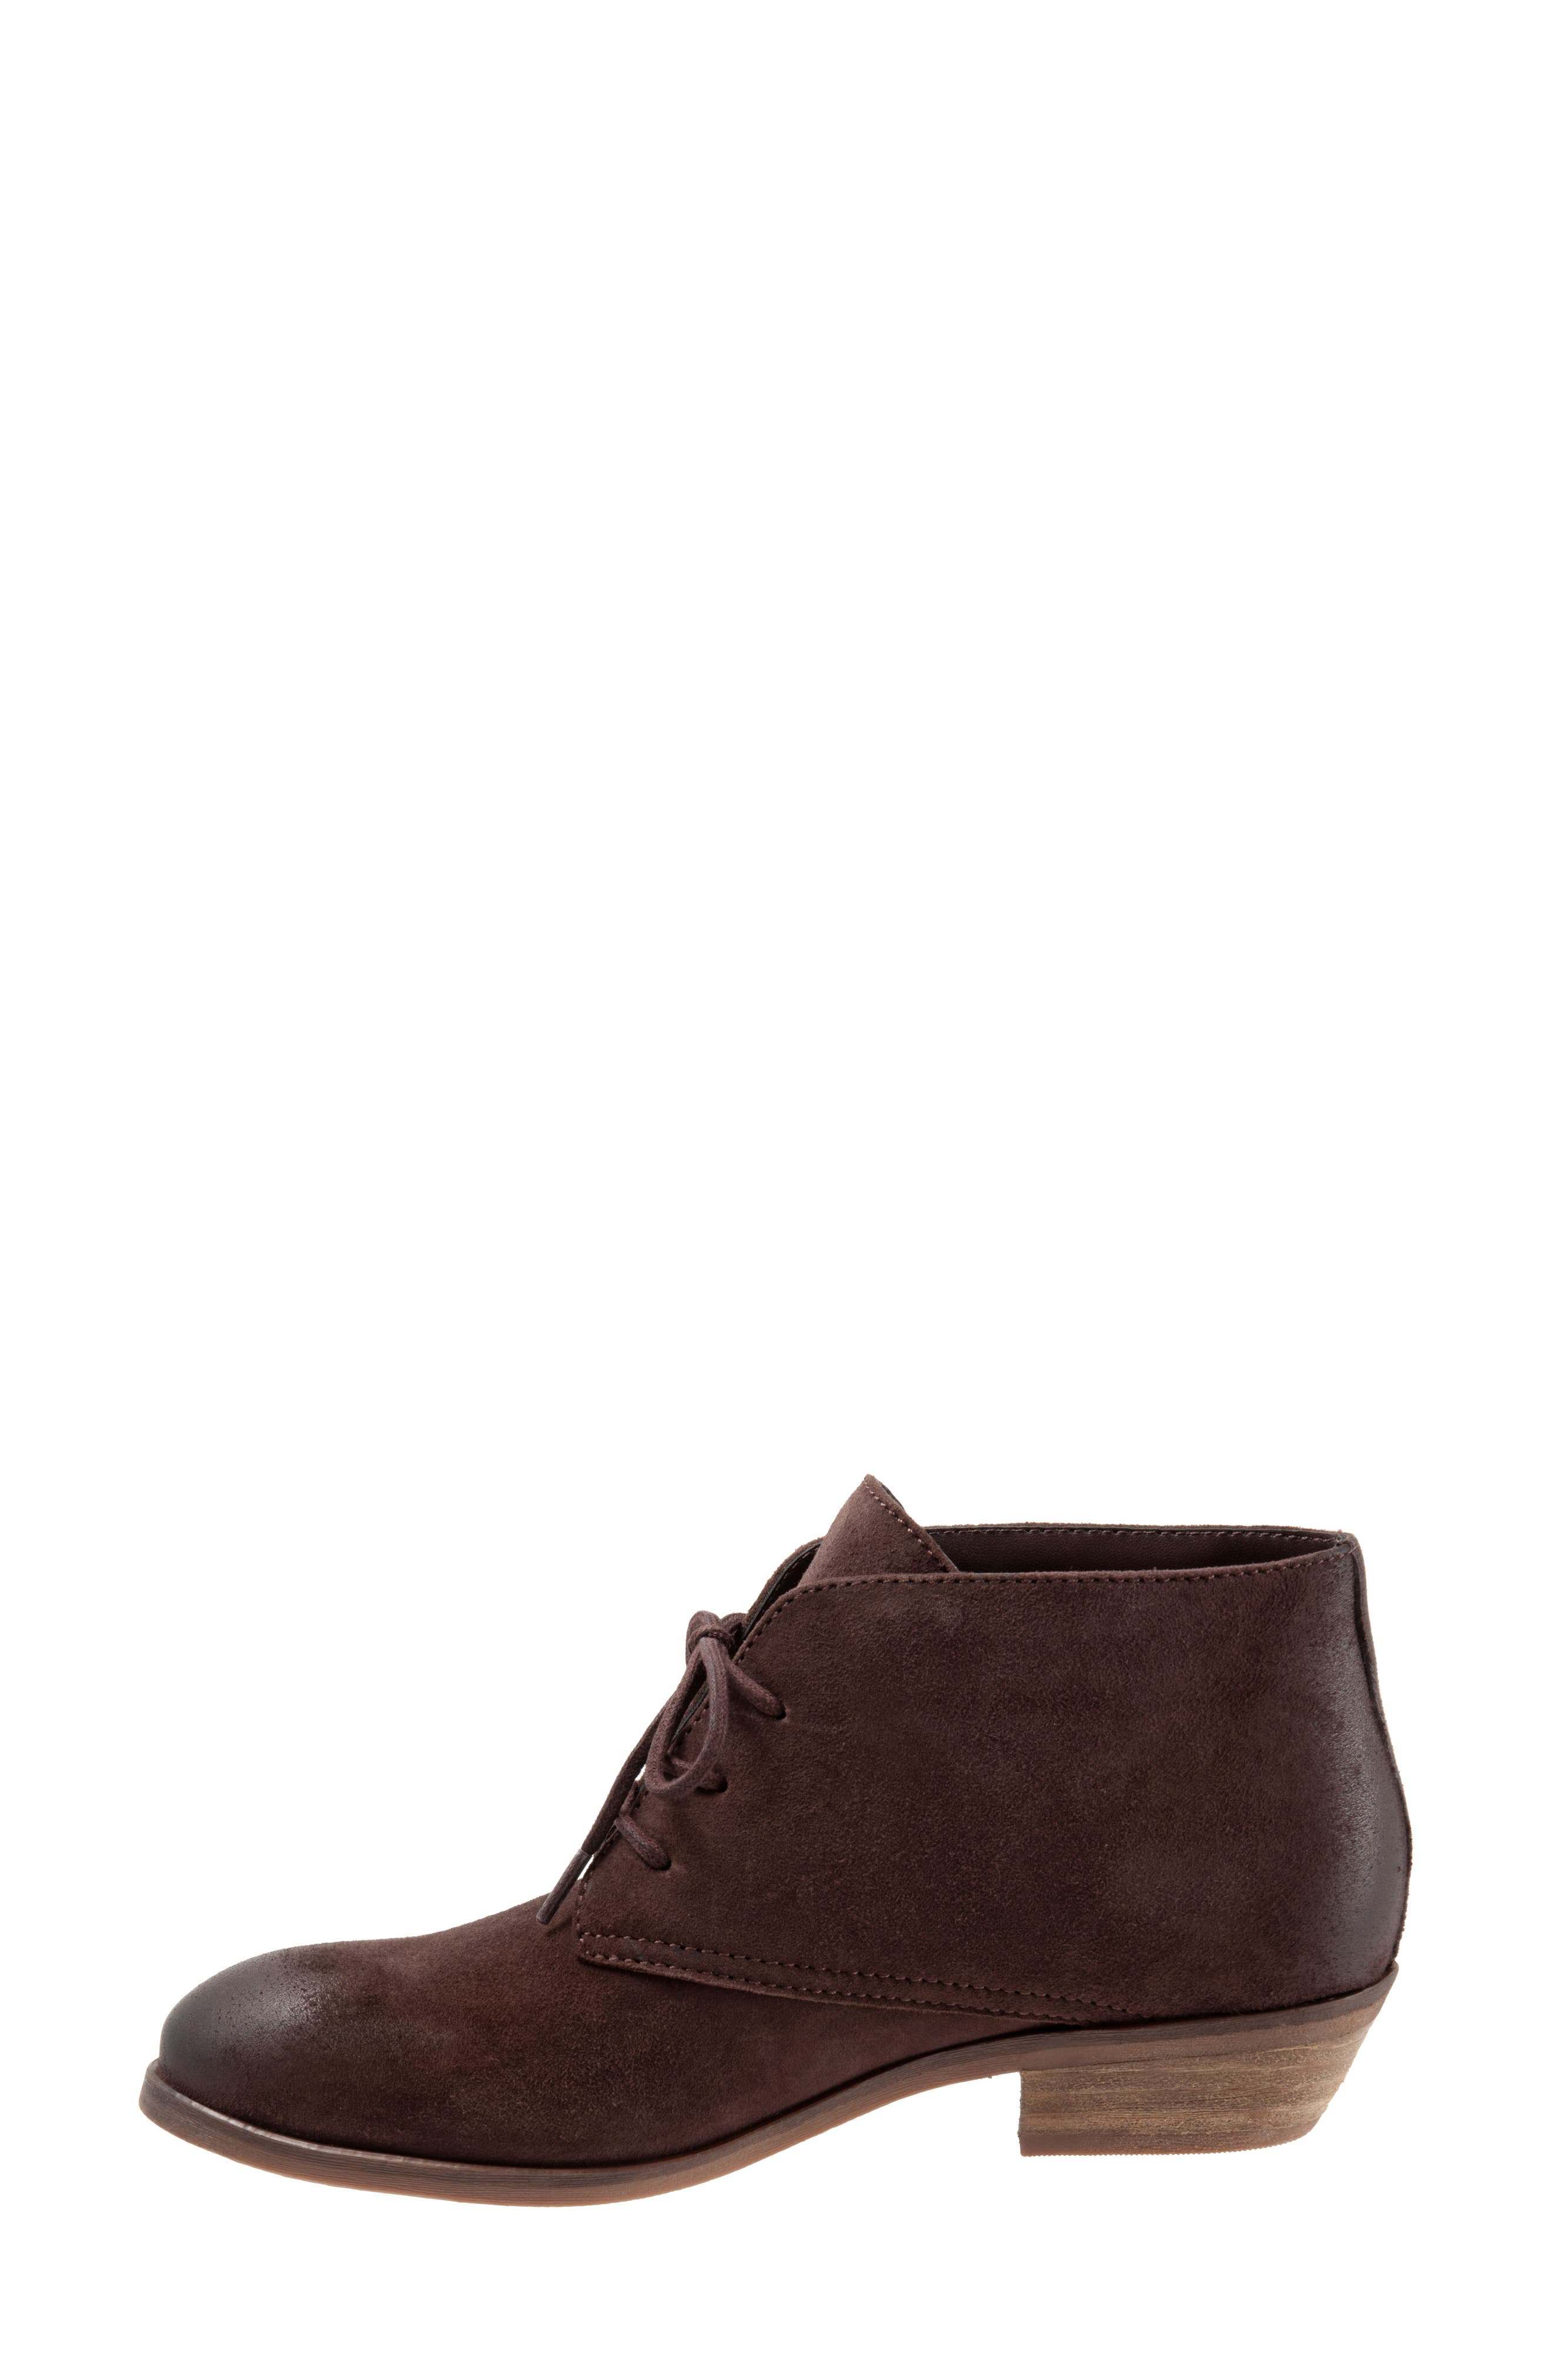 SOFTWALK<SUP>®</SUP>, Ramsey Chukka Boot, Alternate thumbnail 8, color, DARK BROWN LEATHER